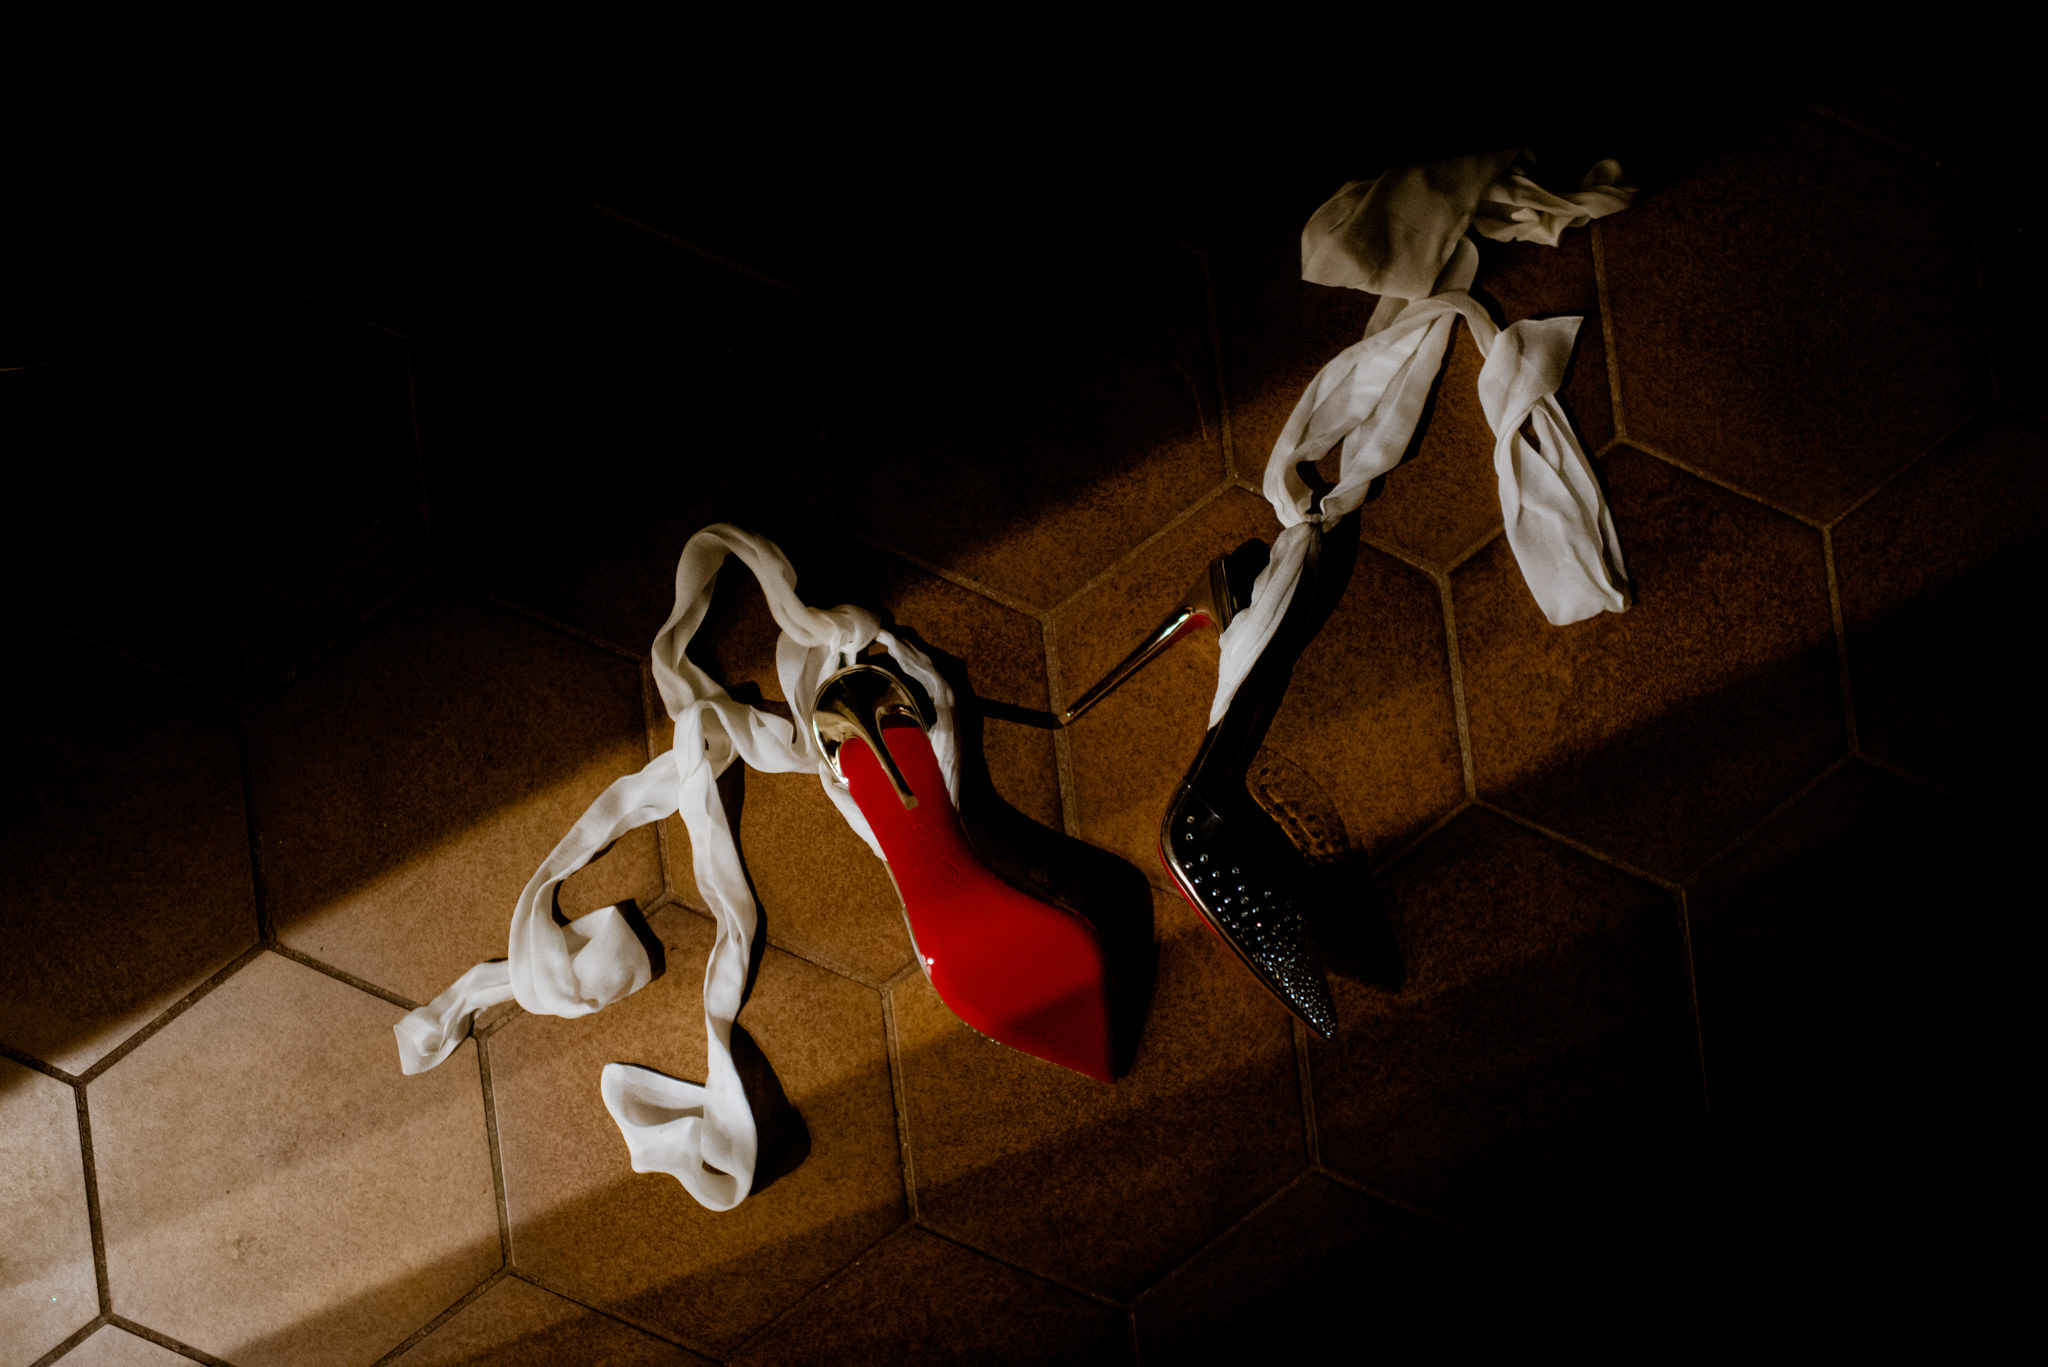 Red louboutin high heeled shoes lying on the floor in a slit of light.